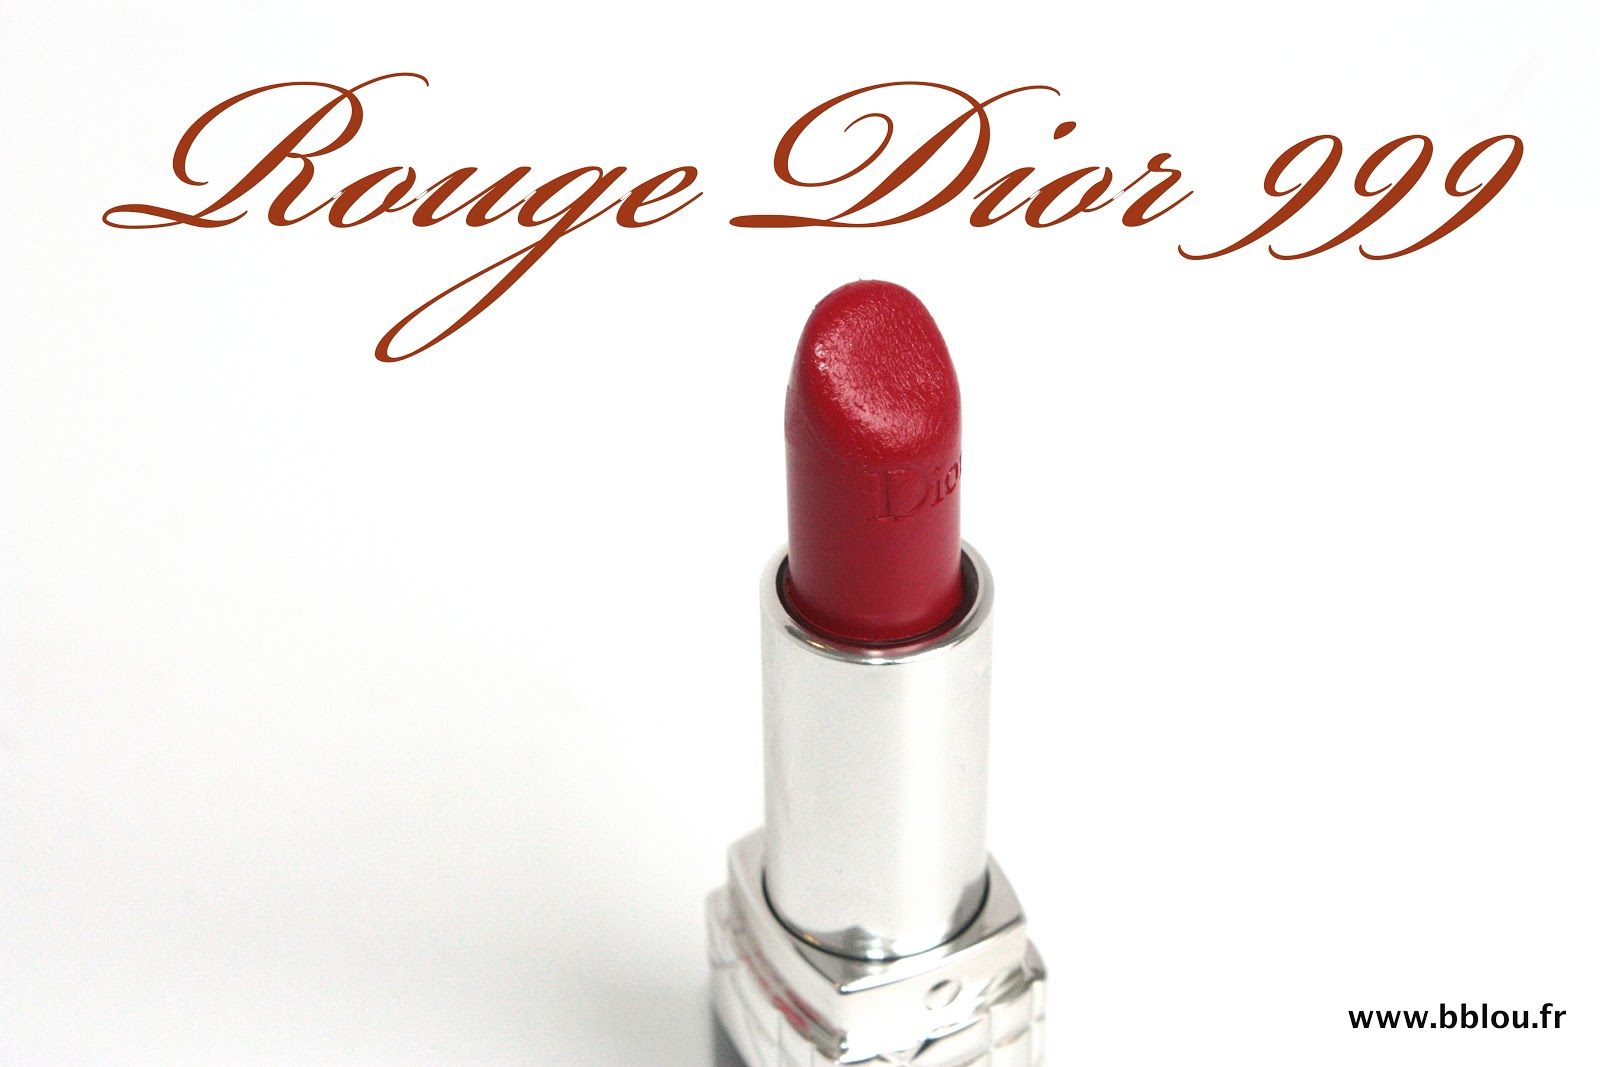 http://www.beautybylou.com/2014/01/rouge-dior-999-juste-parfait.html